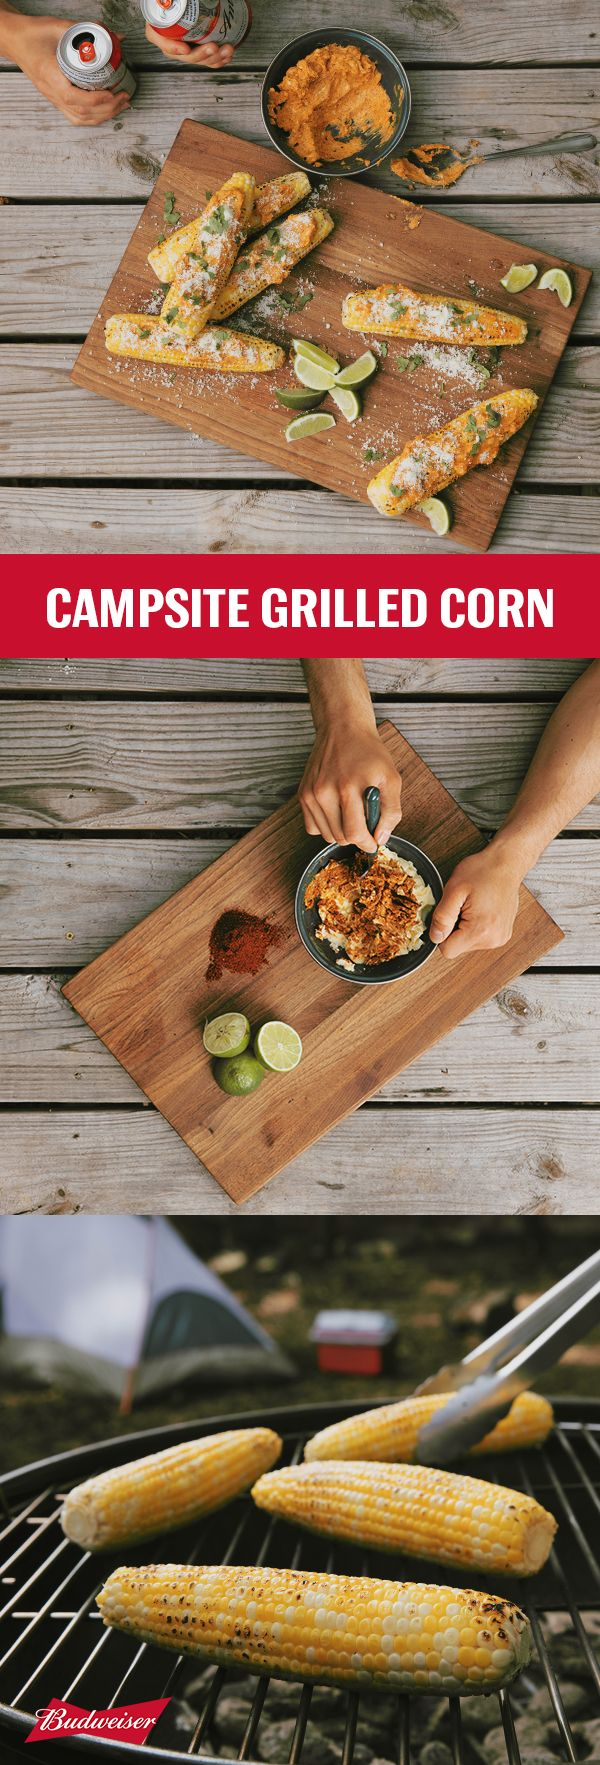 This grilled corn on the cob is a super easy dish for your next campsite barbecue. Set the grill to direct medium heat and cook all four sides for 4 minutes each. Add some chili-lime butter for a zesty addition to this summer staple. Slather on top of the corn, sprinkle with Cotija cheese, and garnish with chopped cilantro. Just grab some Budweiser for a refreshing finish.